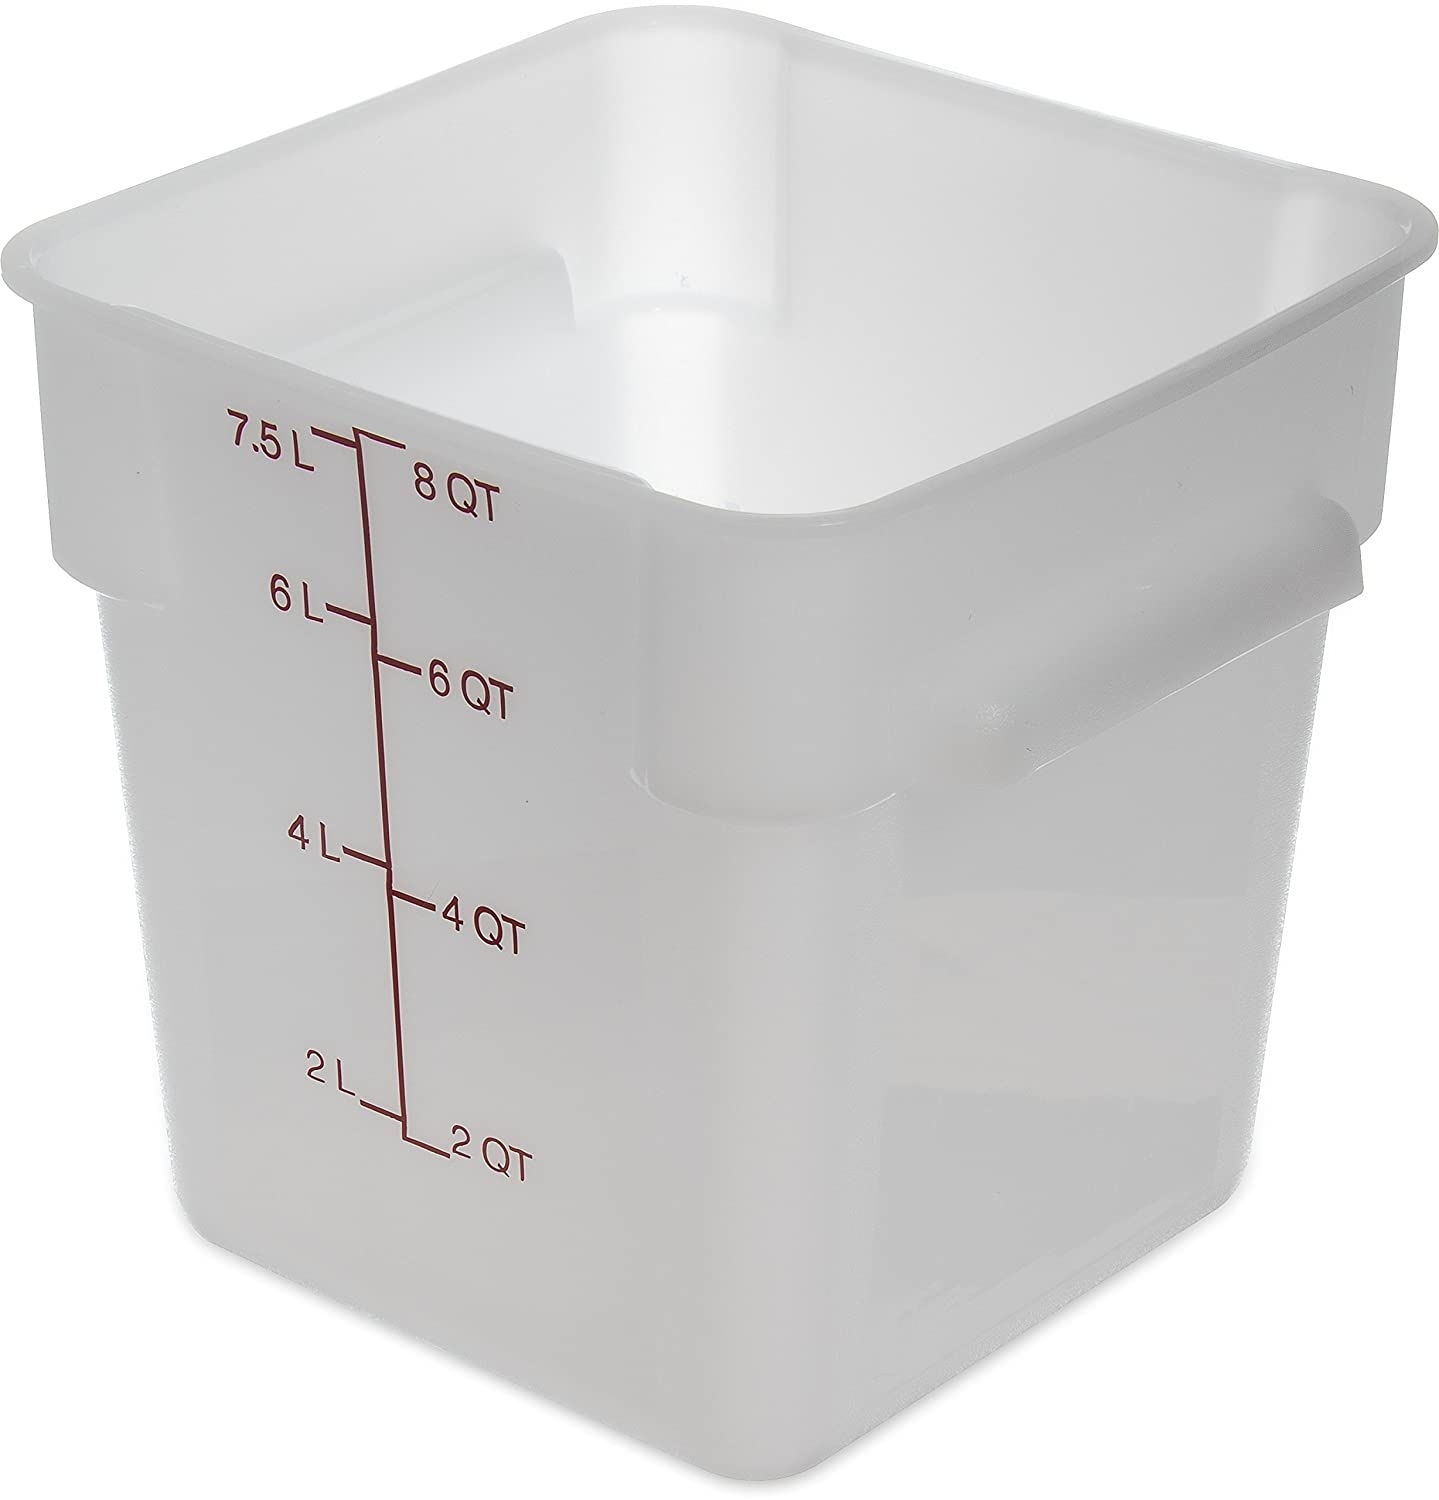 Carlisle 1073302 StorPlus 8 quart Square Food Storage Box, BPA Free, 8.75 Length x 8.75 Width x 9 Height, White (Pack of 6)